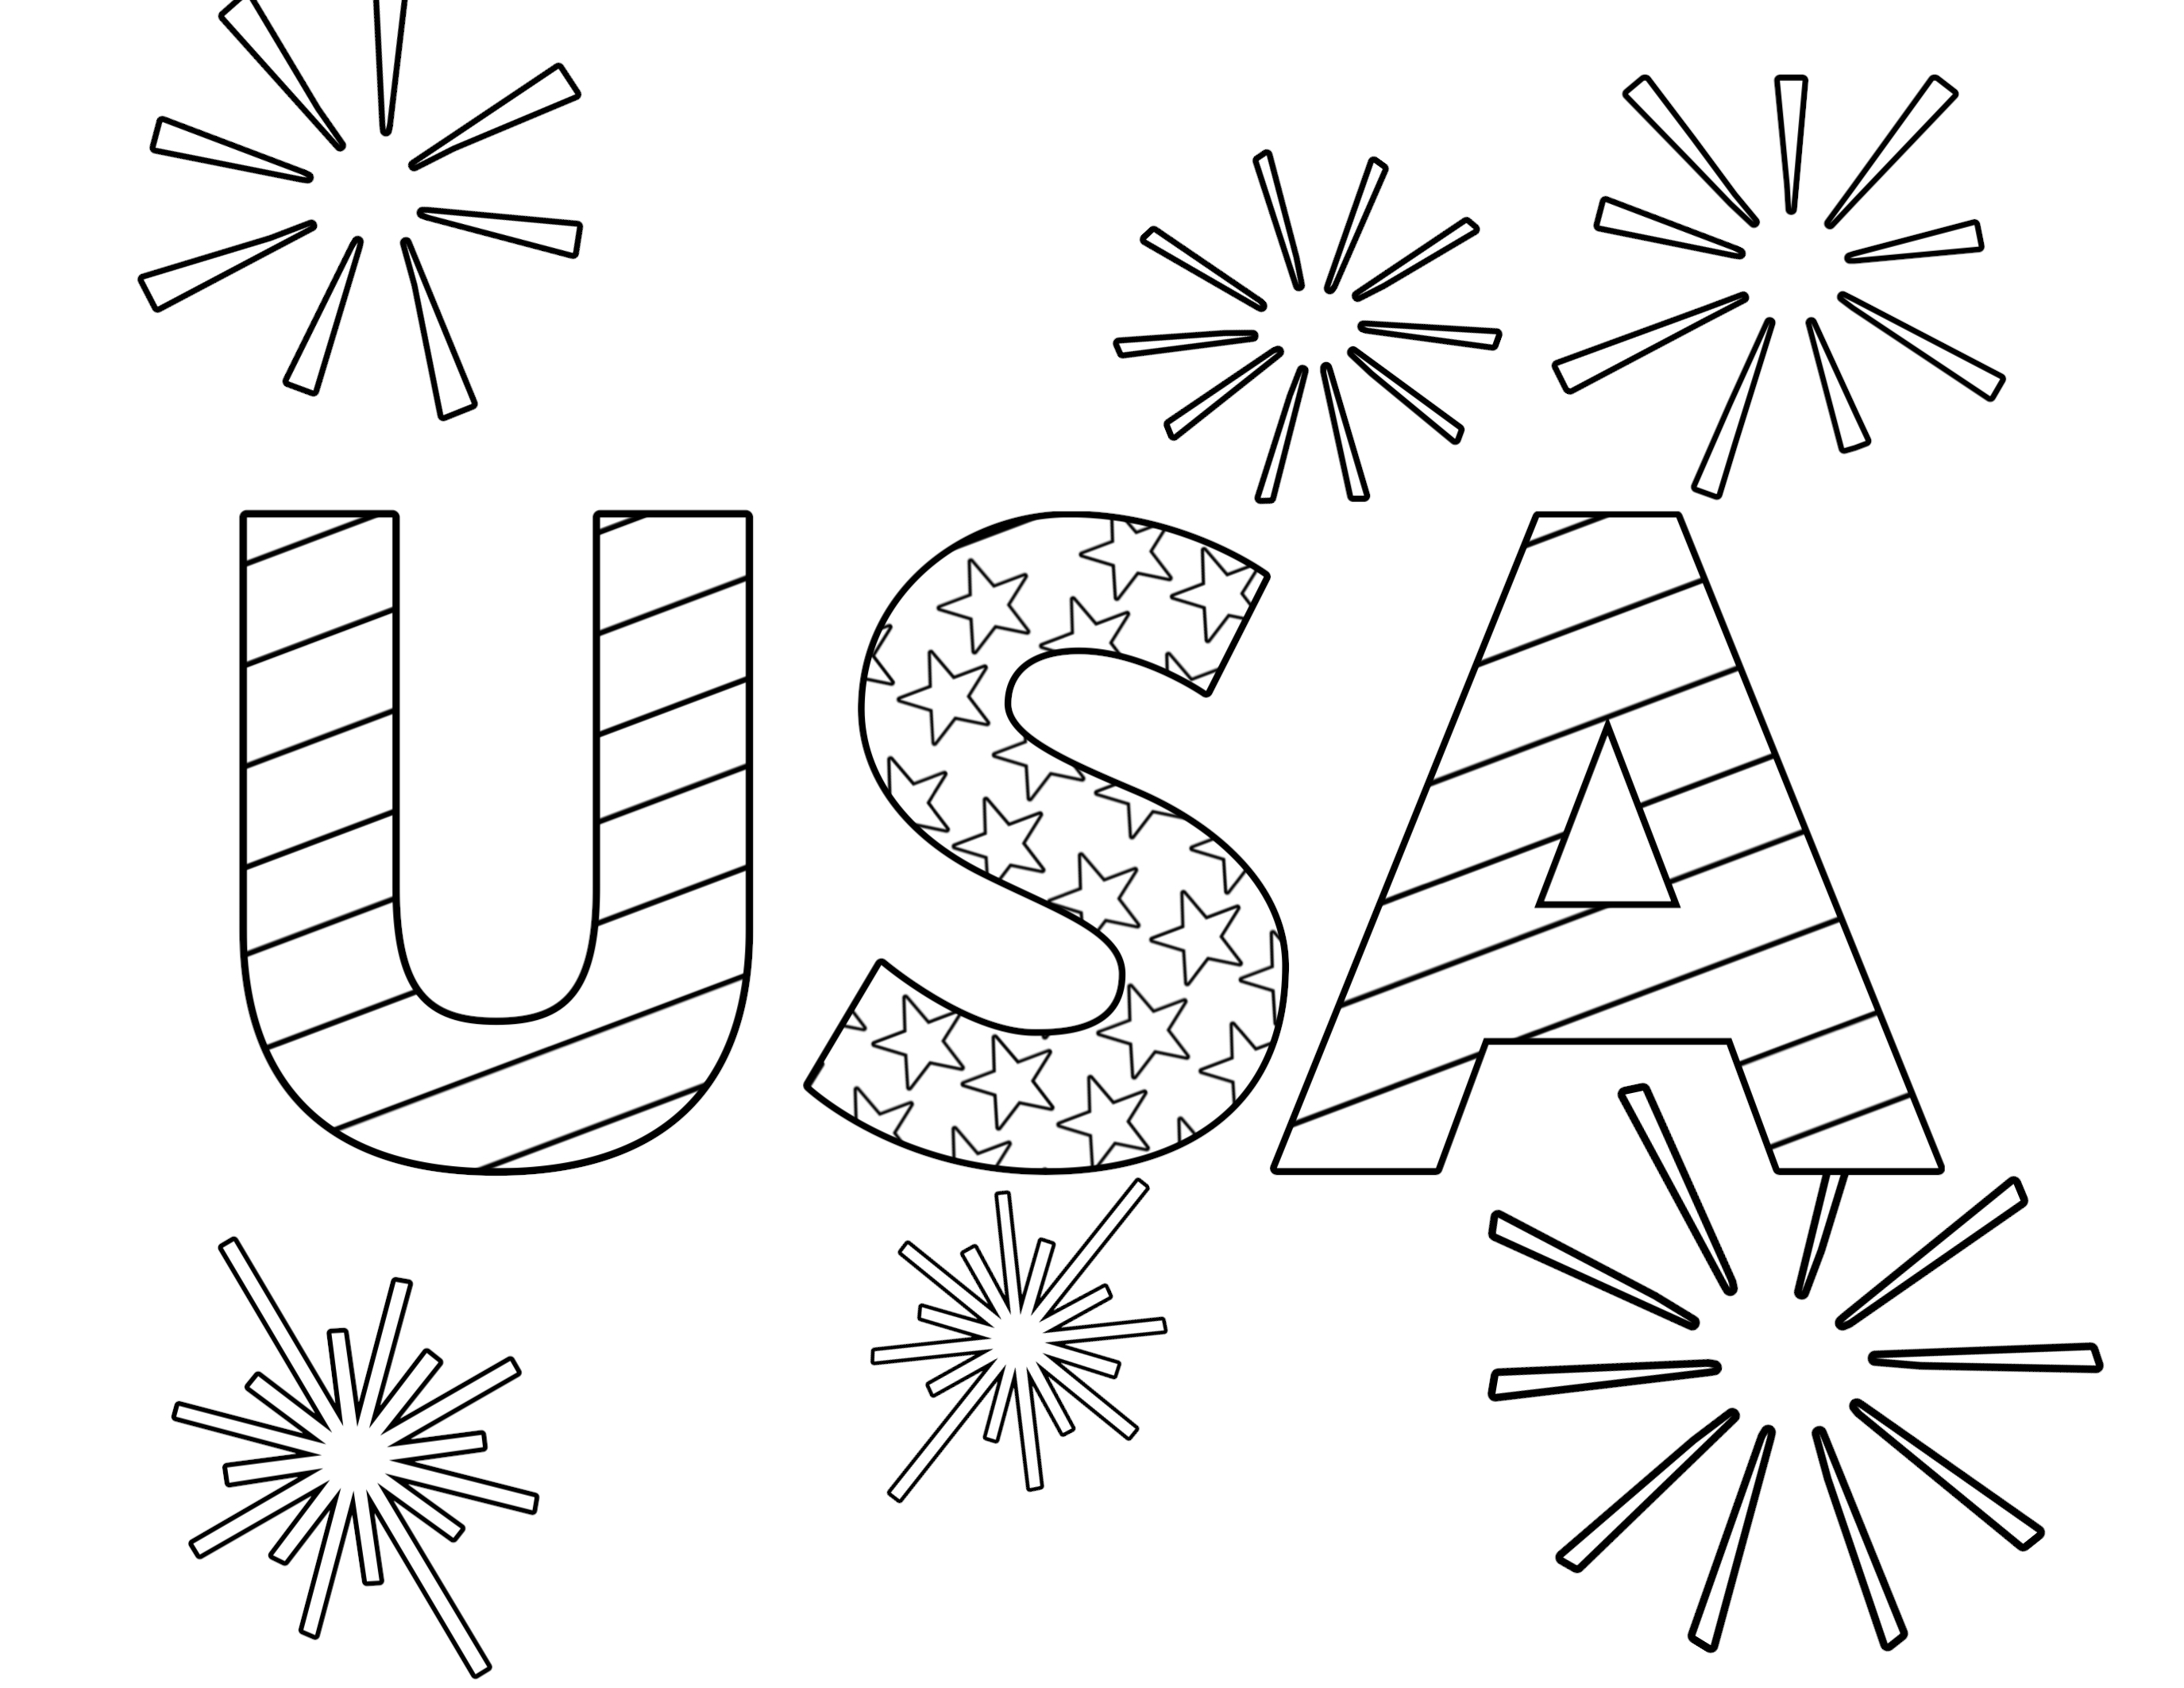 image about 4th of July Coloring Pages Printable identified as Absolutely free Printable 4th of July Coloring Web pages - Paper Path Structure